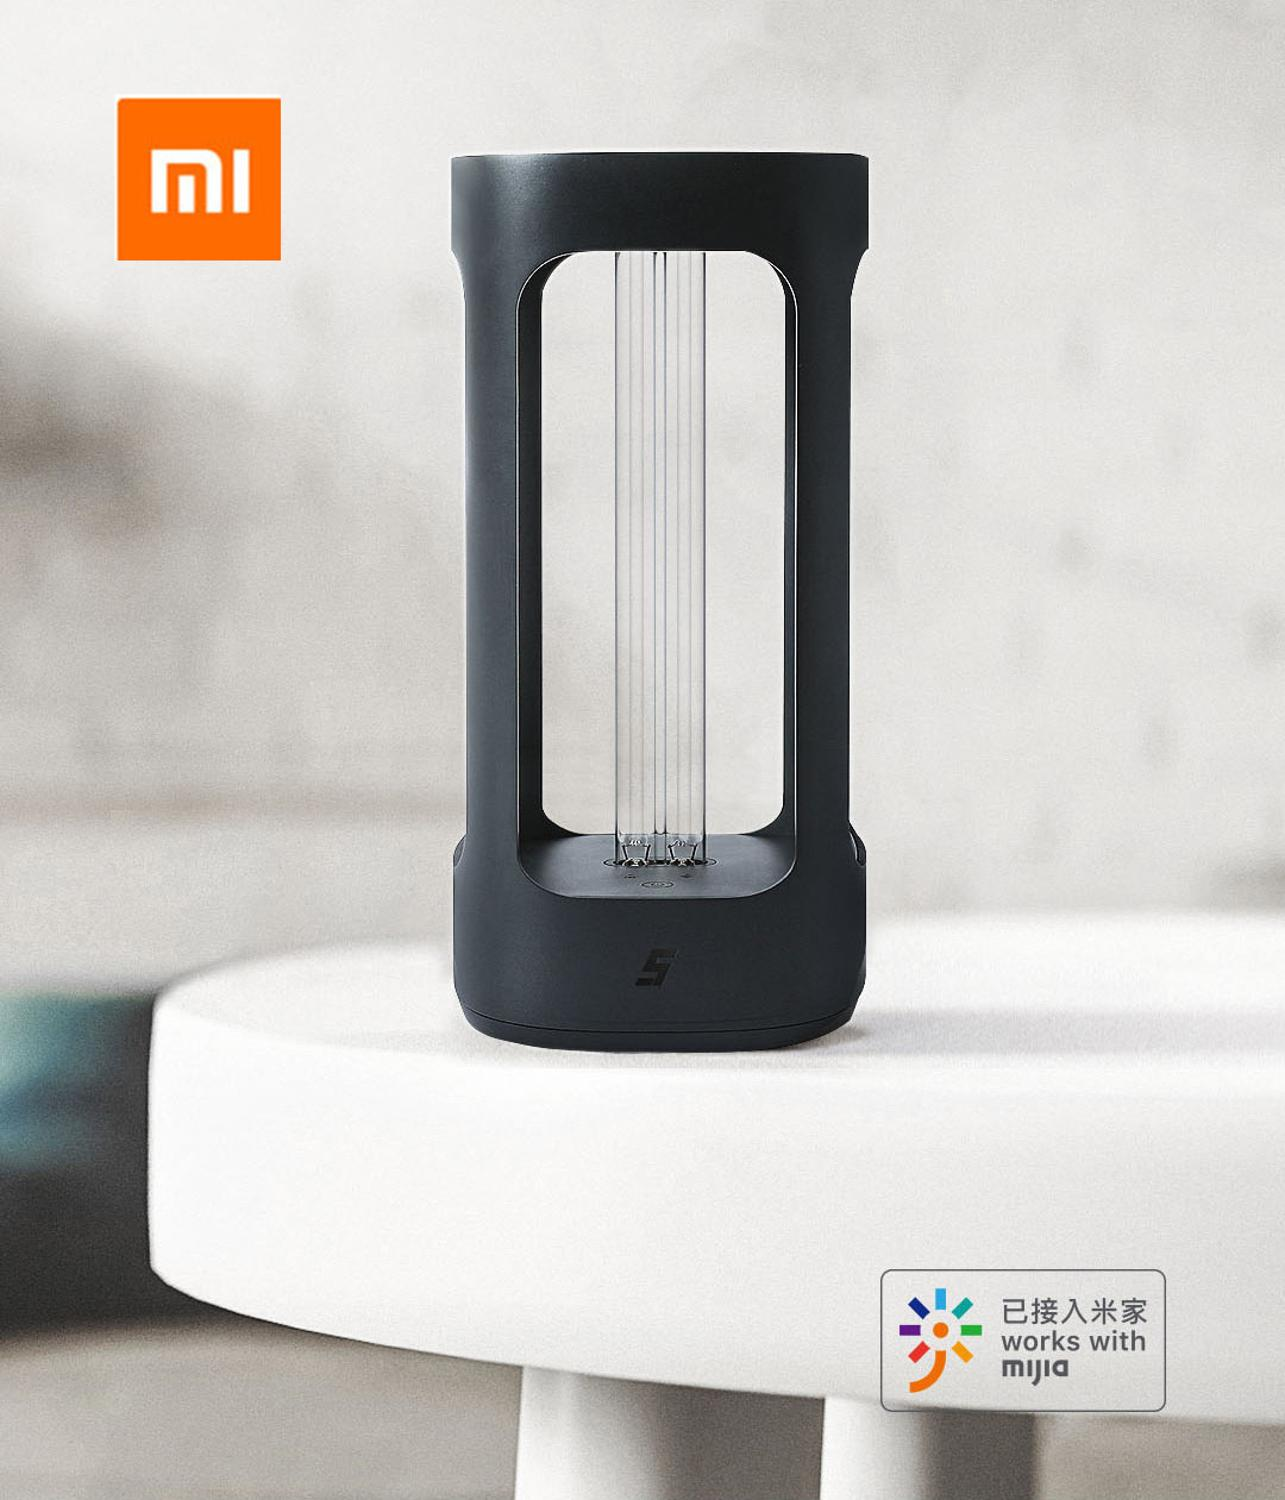 Xiaomi Mijia FIVE Smart UVC Disinfection Lamp Human Body Induction UV Sterializer From Xiaomi Youpin With Mijia App Control